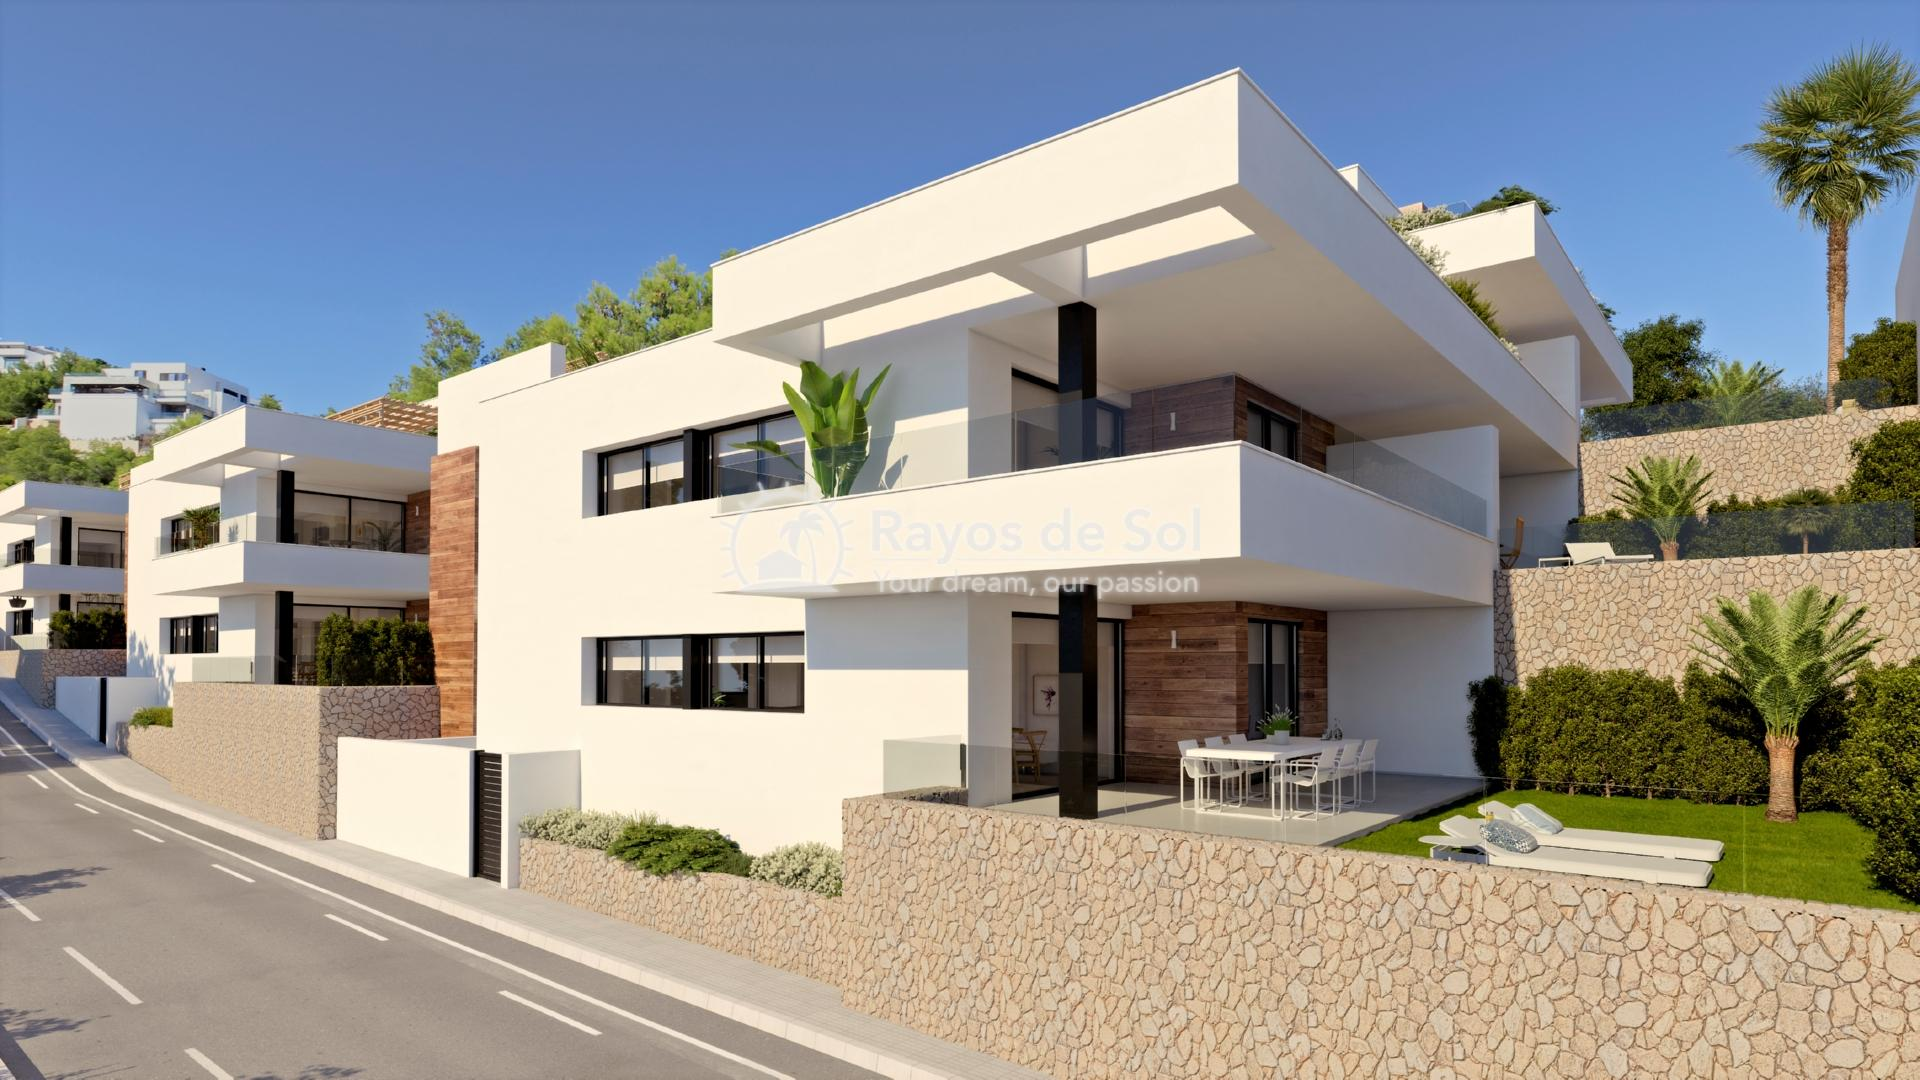 Apartment in Cumbre del Sol, Benitachell, Costa Blanca (ov-ph003) - 1